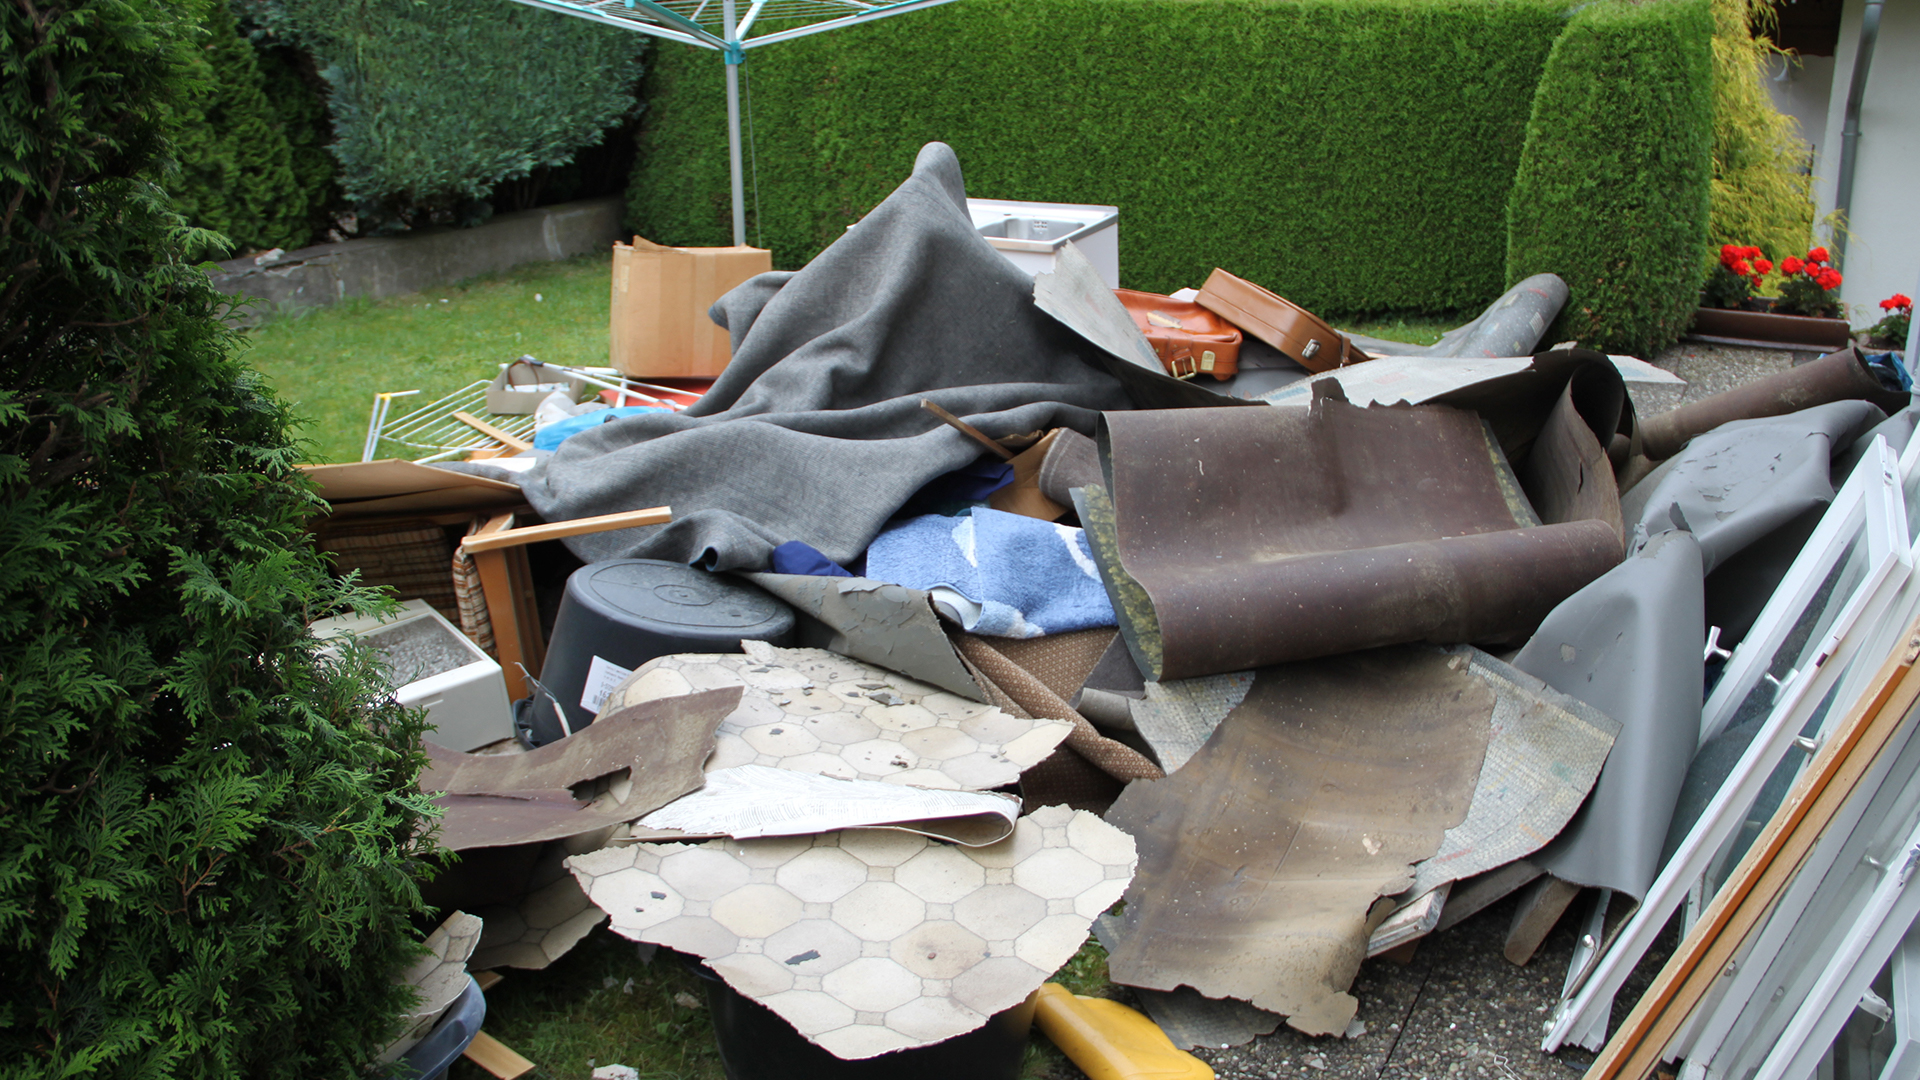 Garden Clearance & Removal of Household Waste